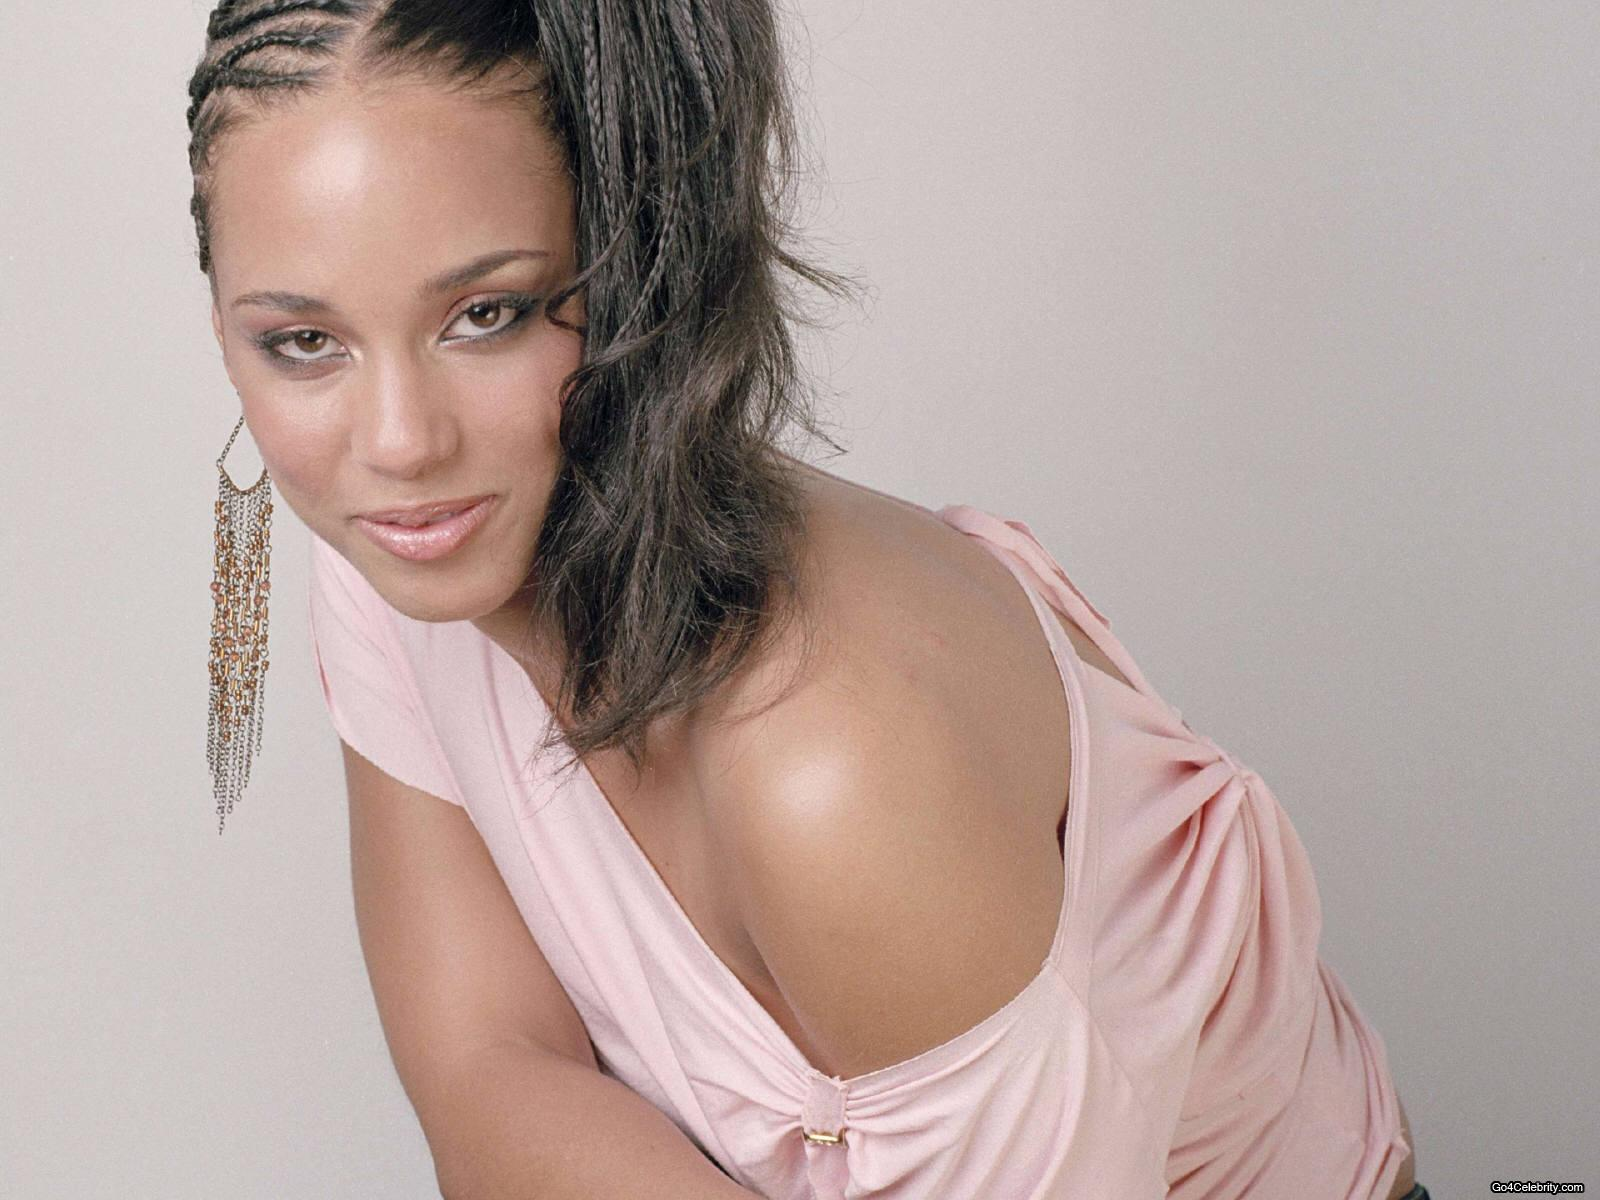 Phenomenal Pictures Of Braided Hairstyles Alicia Keys Hairstyles For Women Draintrainus